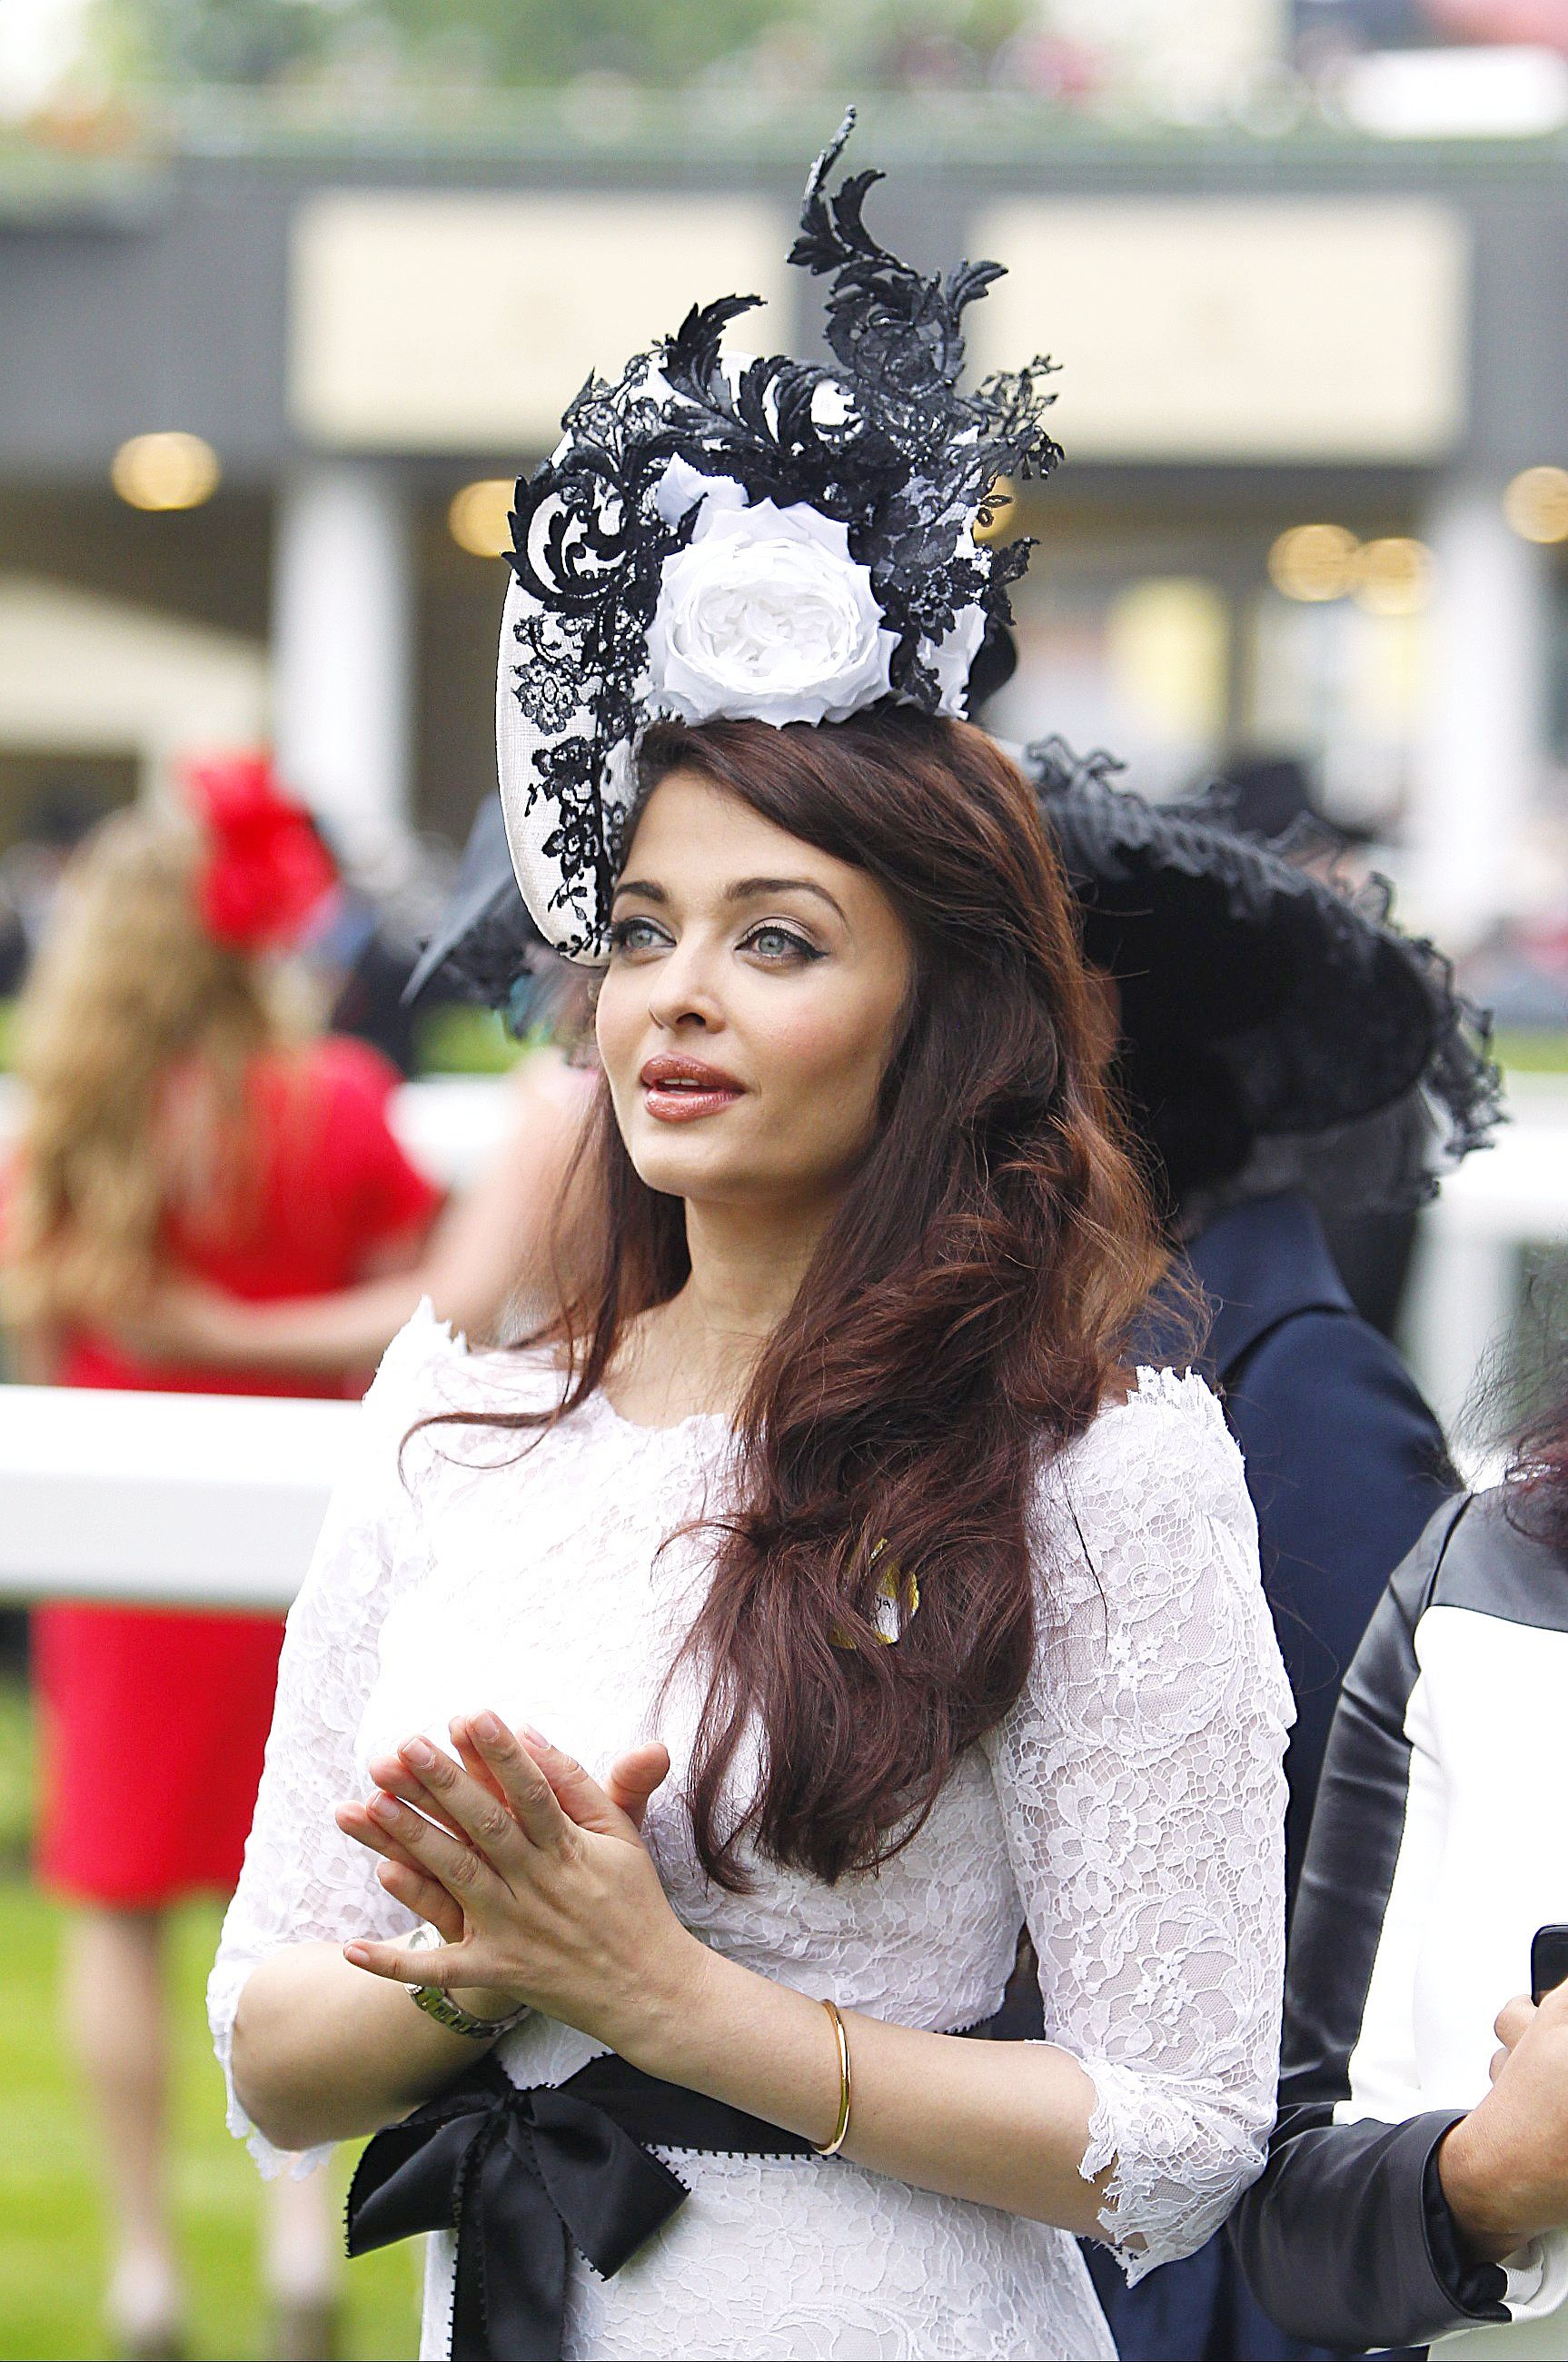 The Bachchan Bahu looked gorgeous in a lace dress, and in an interesting fascinator by Philip Treacy.